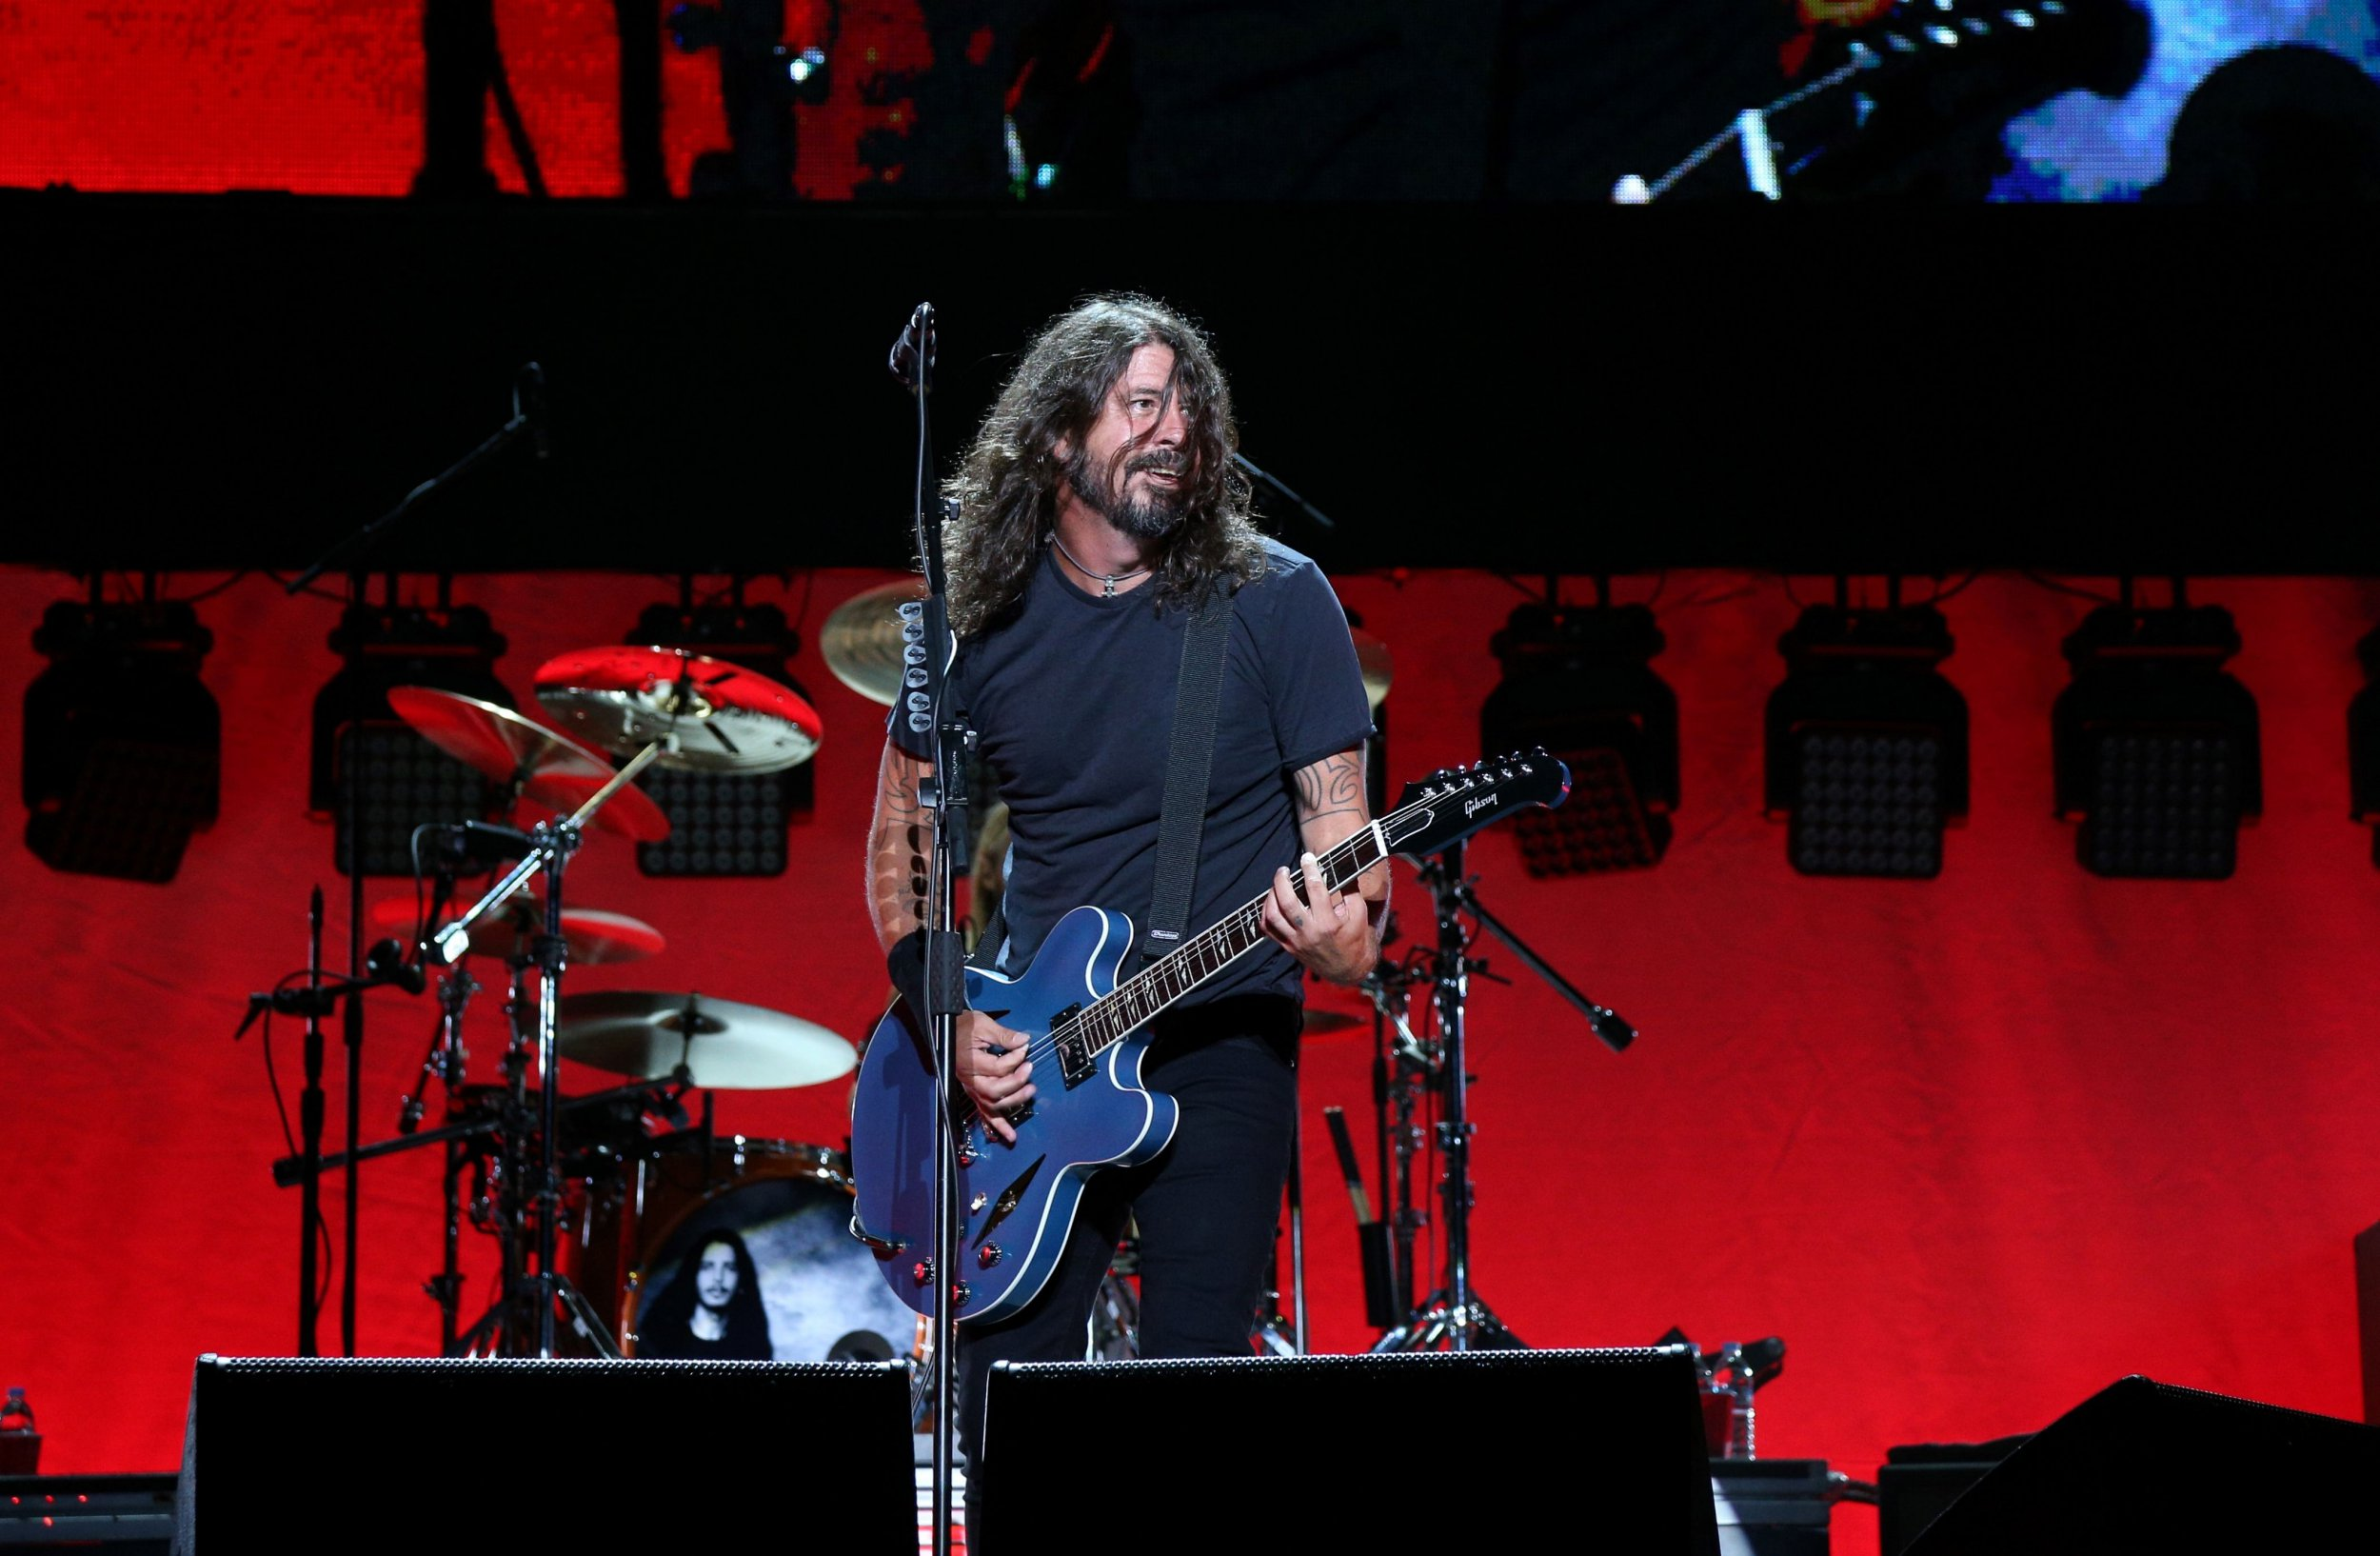 Foo Fighters tickets for 2018 UK tour on pre-sale now, when and where to get them on general sale